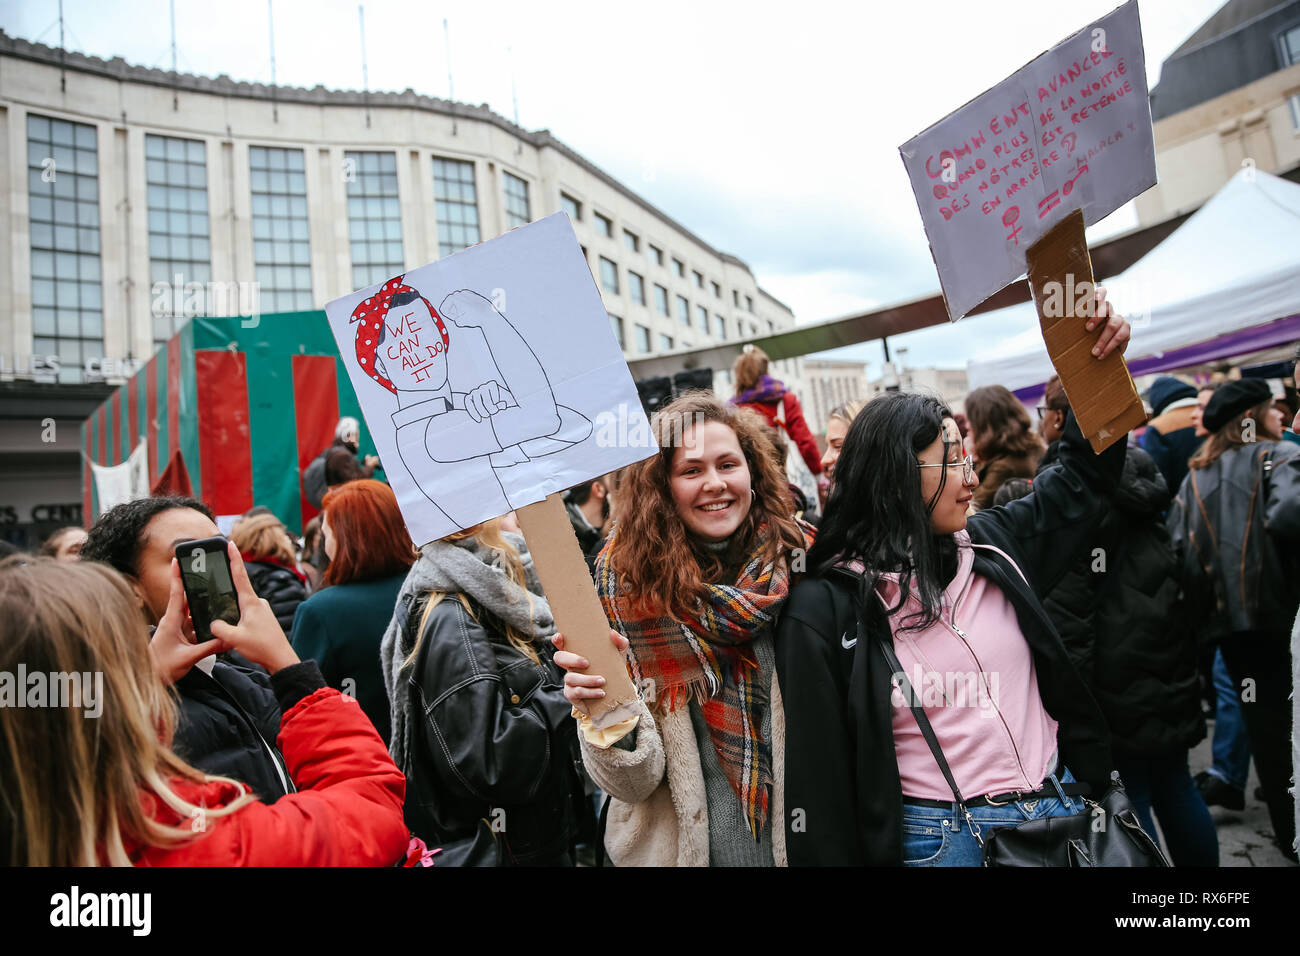 Brussels, Belgium. 8th Mar, 2019. People hold placards as they attend a women's strike in Brussels, Belgium, March 8, 2019. Thousands of women went on strike across Belgium on International Women's Day to campaign for women's rights and gender equality, local media reported. Credit: Zhang Cheng/Xinhua/Alamy Live News Stock Photo